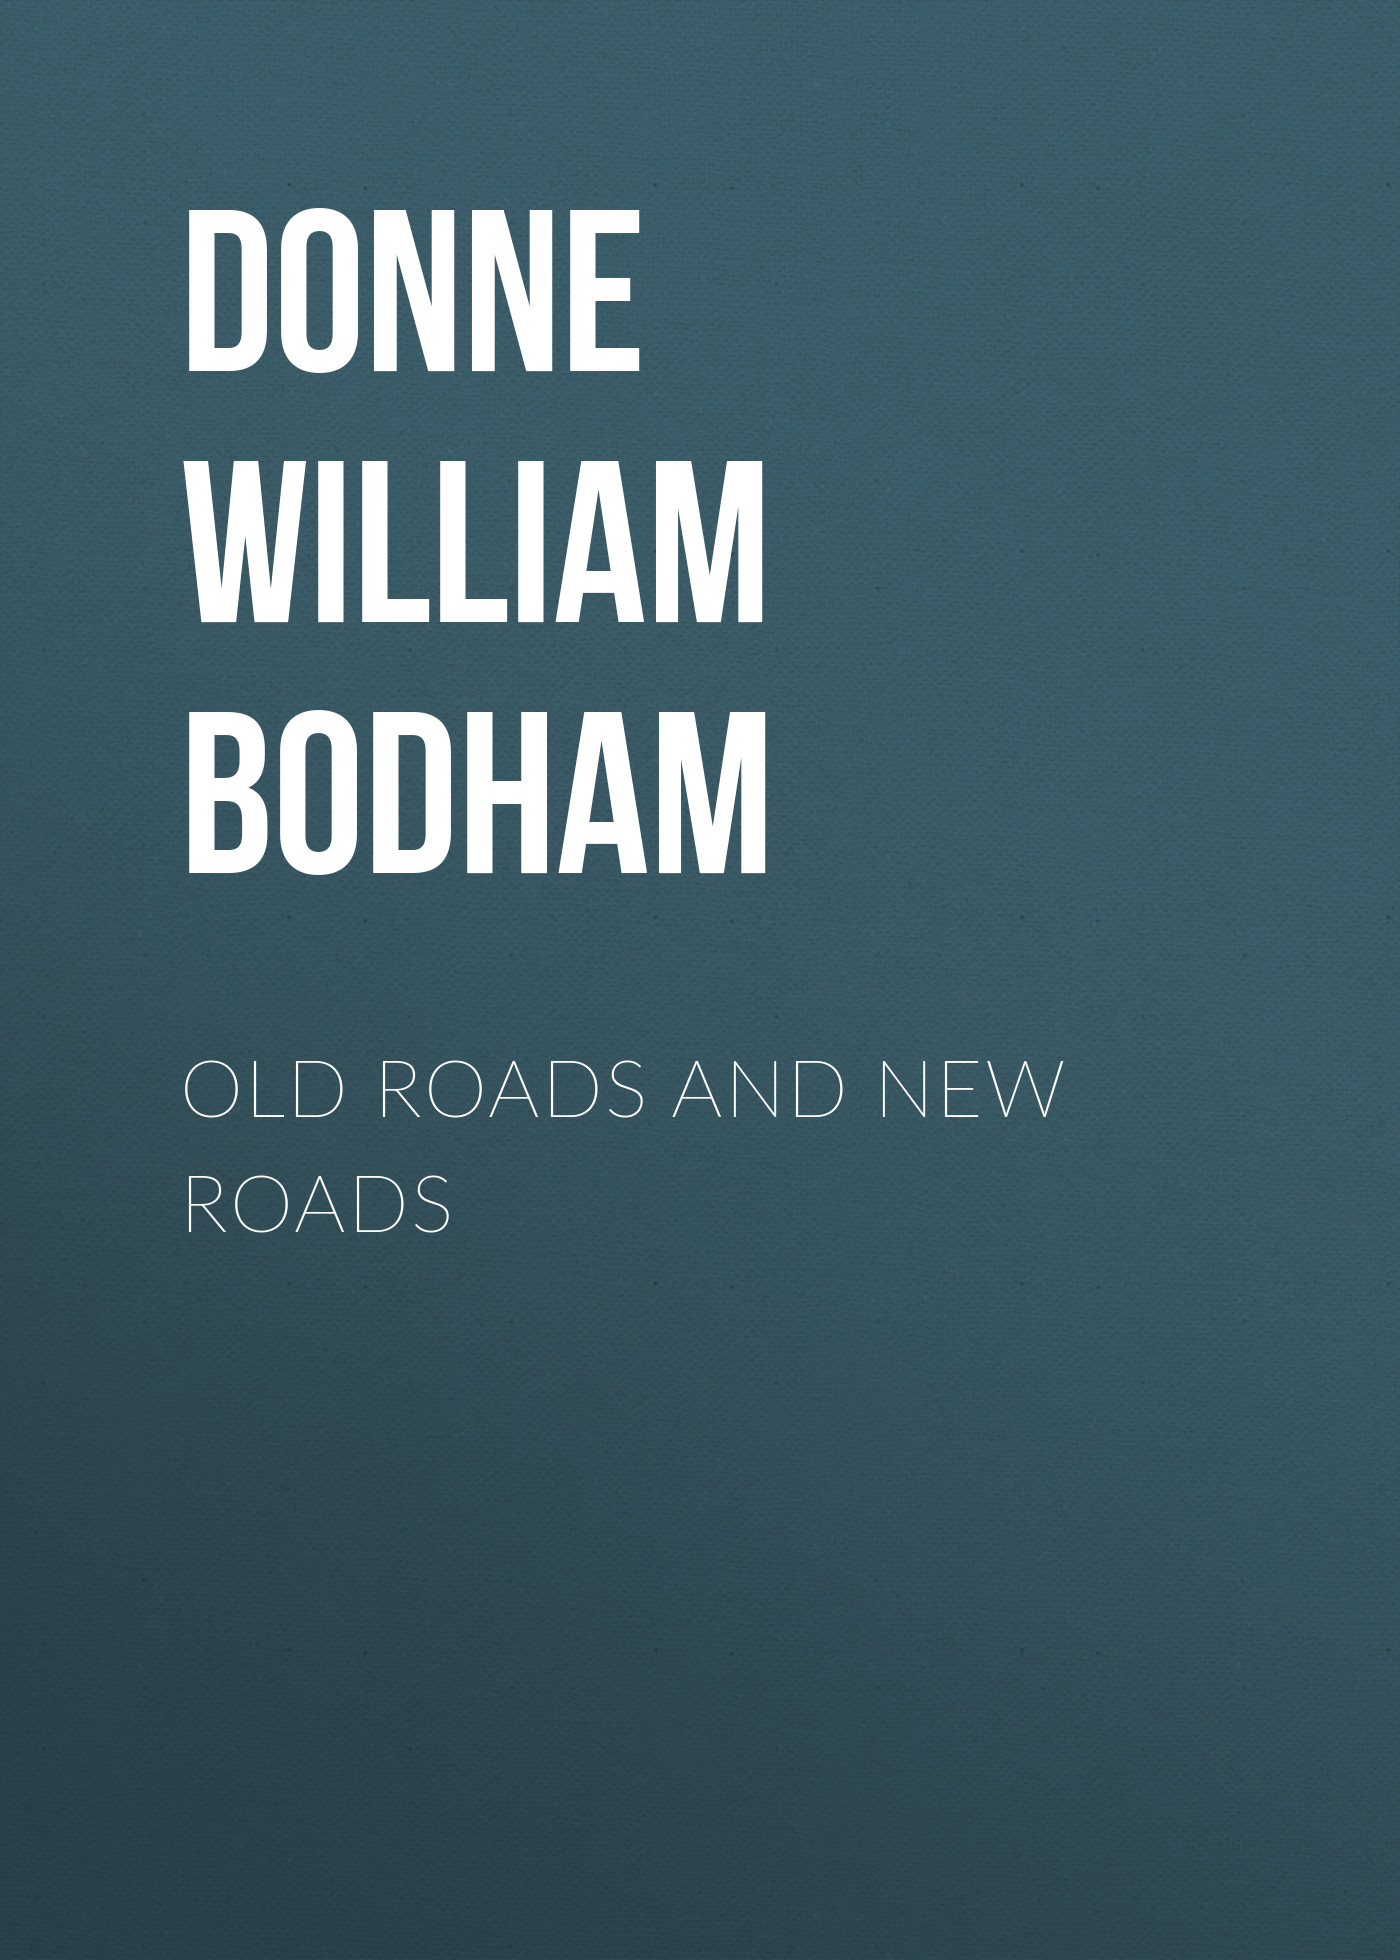 Donne William Bodham Old Roads and New Roads ring roads